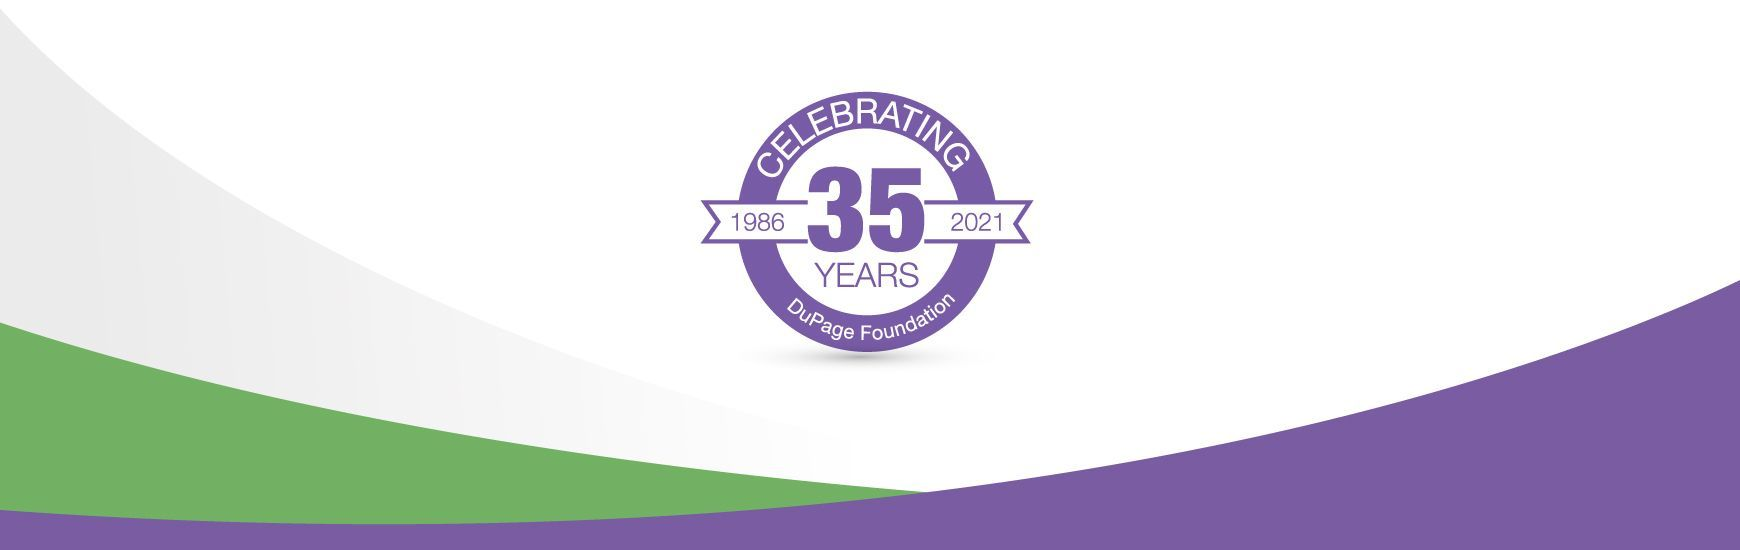 DuPage Foundation's 35th Anniversary